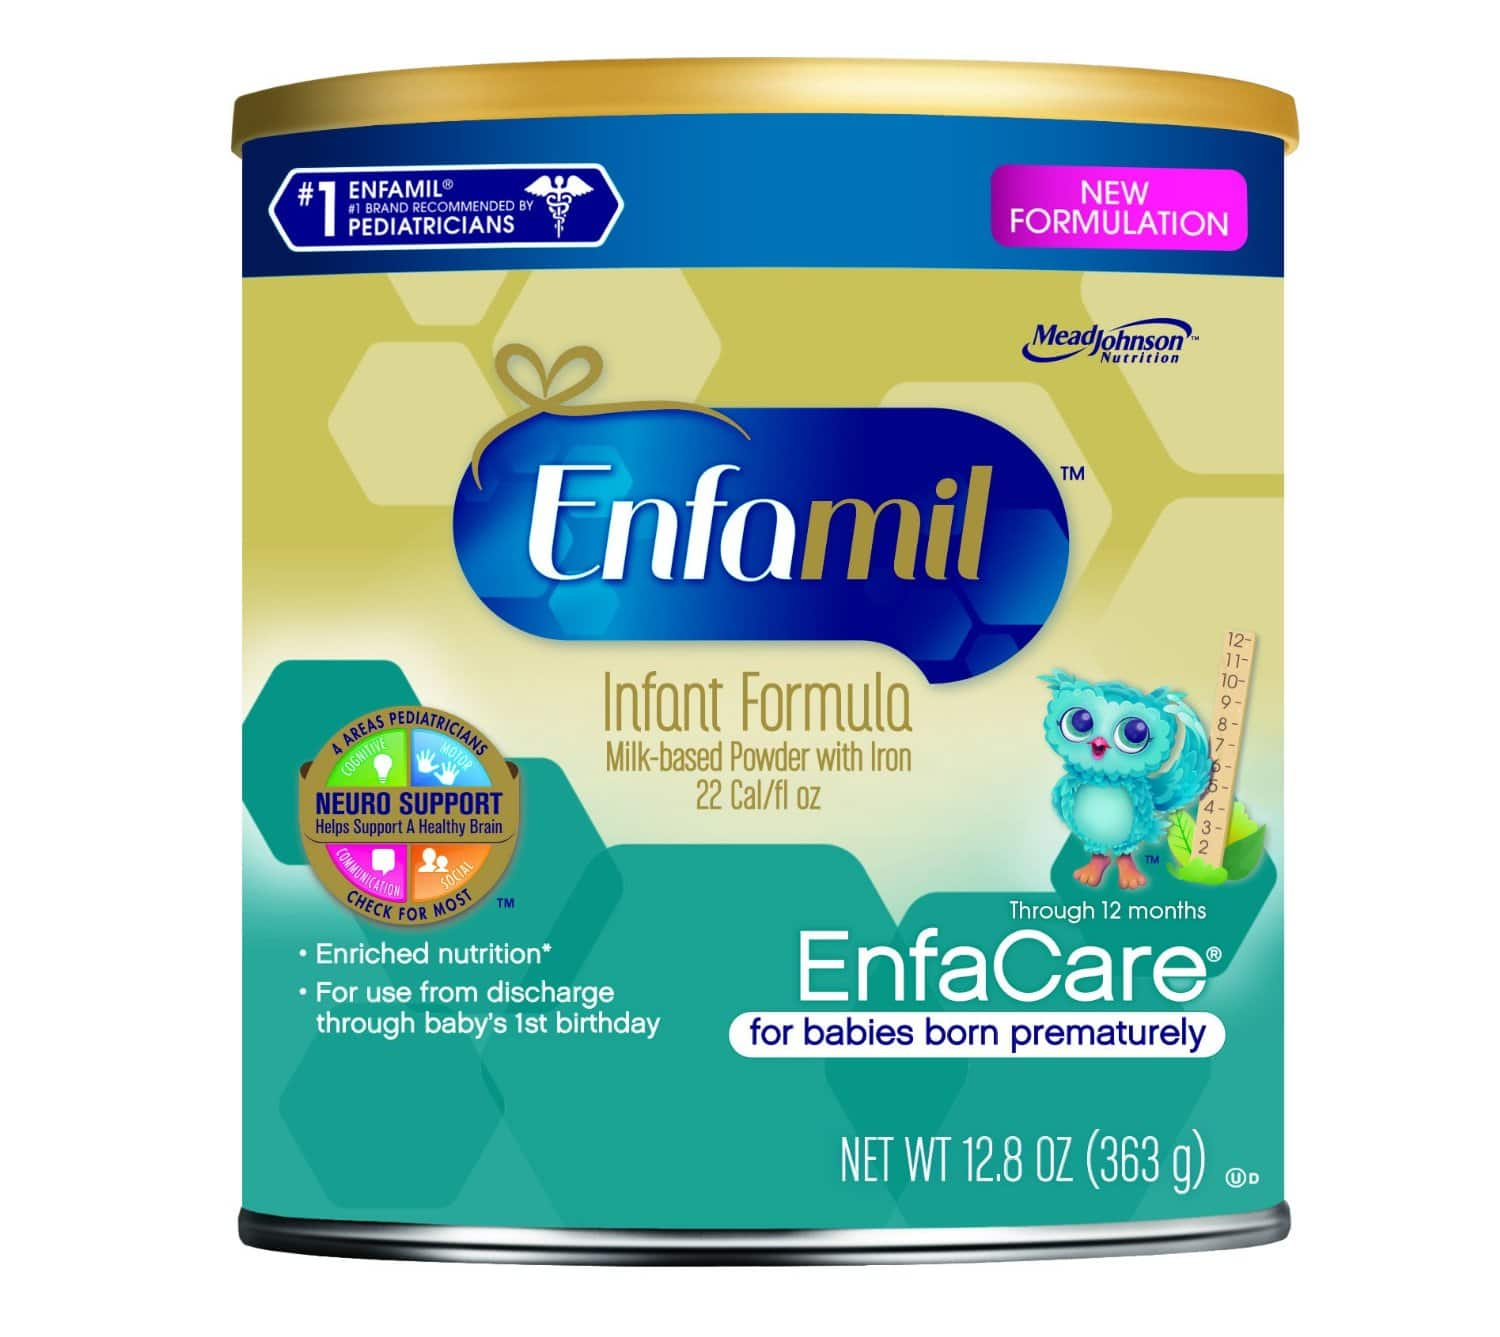 Enfamil EnfaCare Baby Formula - 12.8 oz Powder Can (Pack of 6) (Packaging May Vary) $15.29